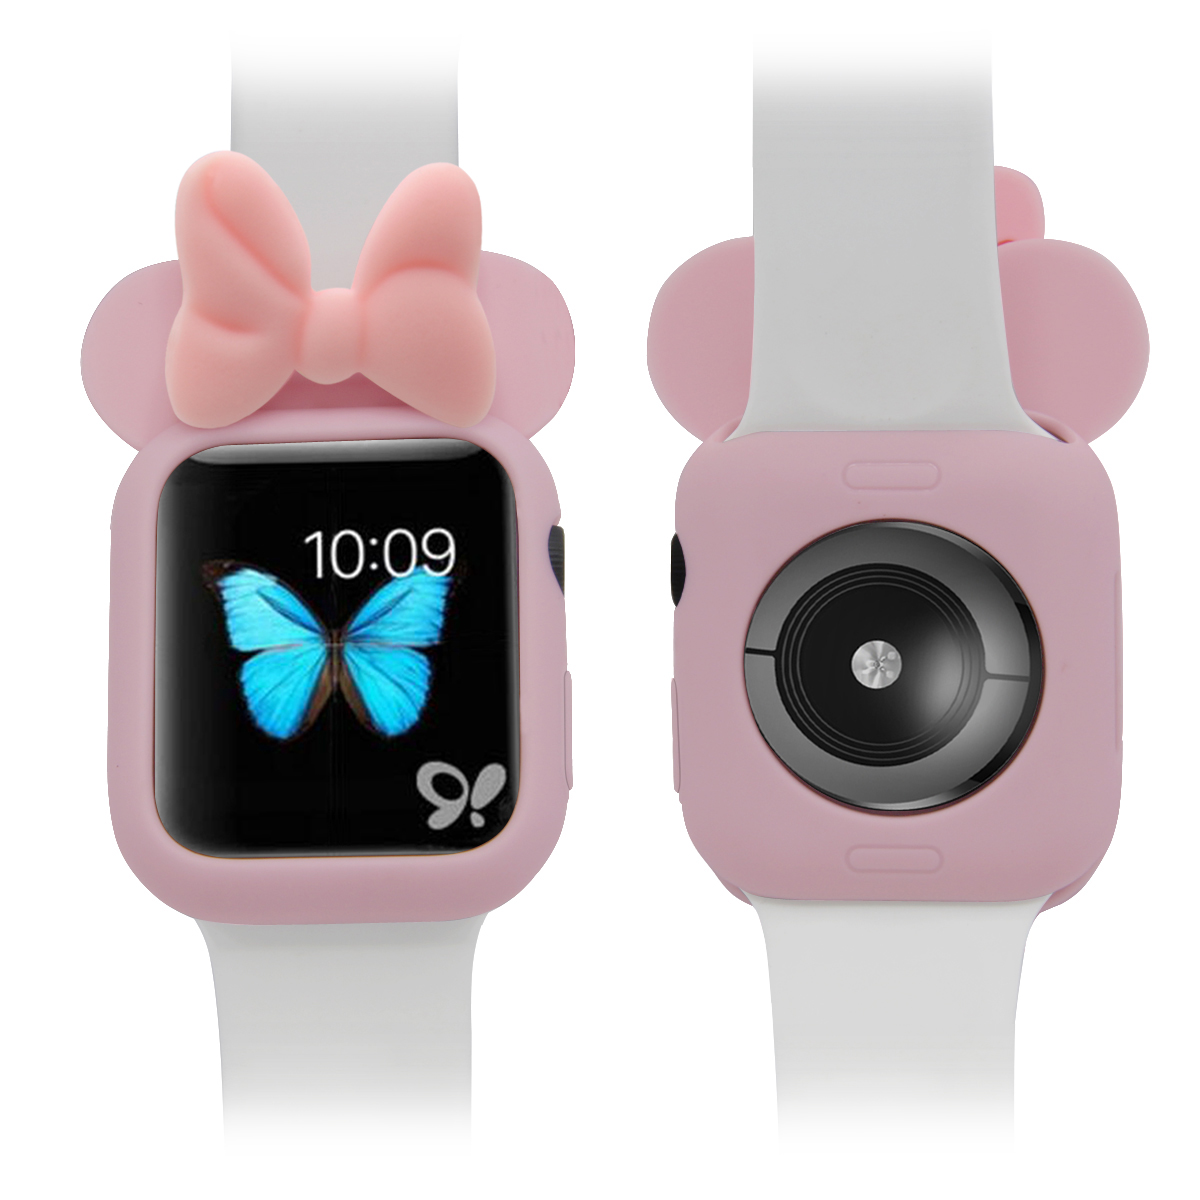 Serilabee MI NI  CASE For Apple Watch 4 5/3/2/1 40MM 44MM Lovely Protect Tpu Cases For Iwatch Series 4 5/3/2/1